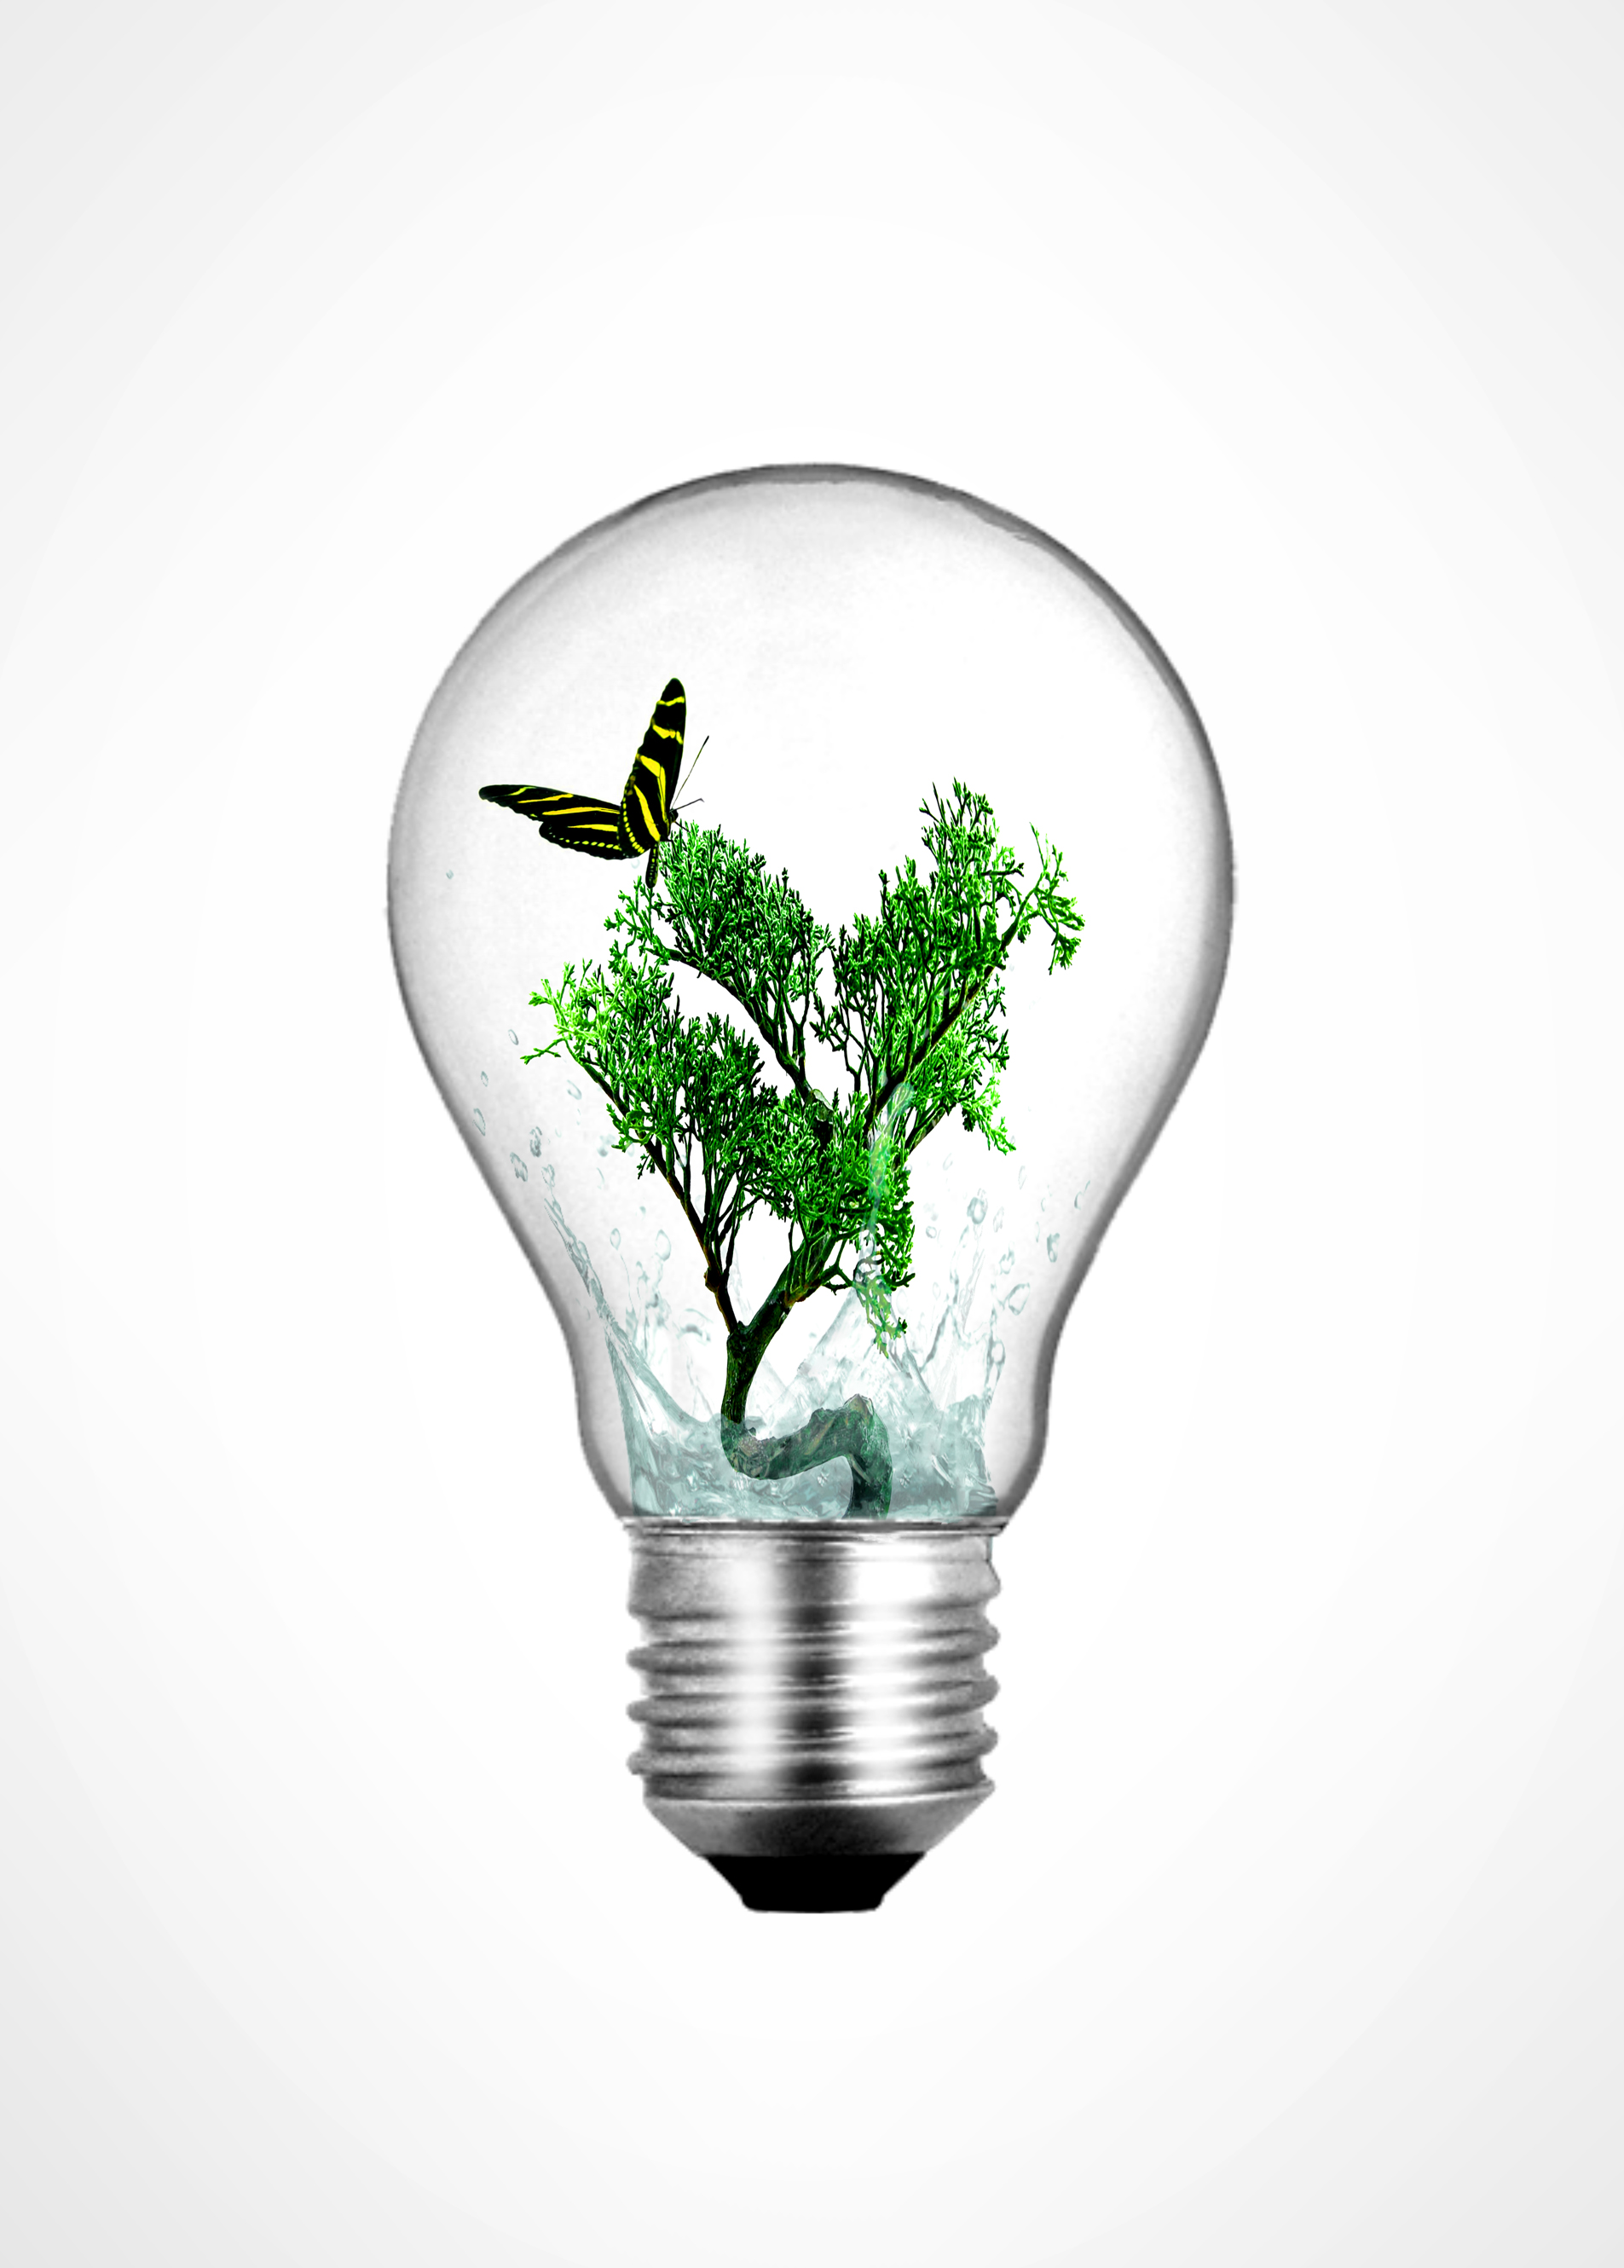 Lightbulb with bonsai plant and butterfly inside, Alternative, Recycling, Recycle, Protection, HQ Photo